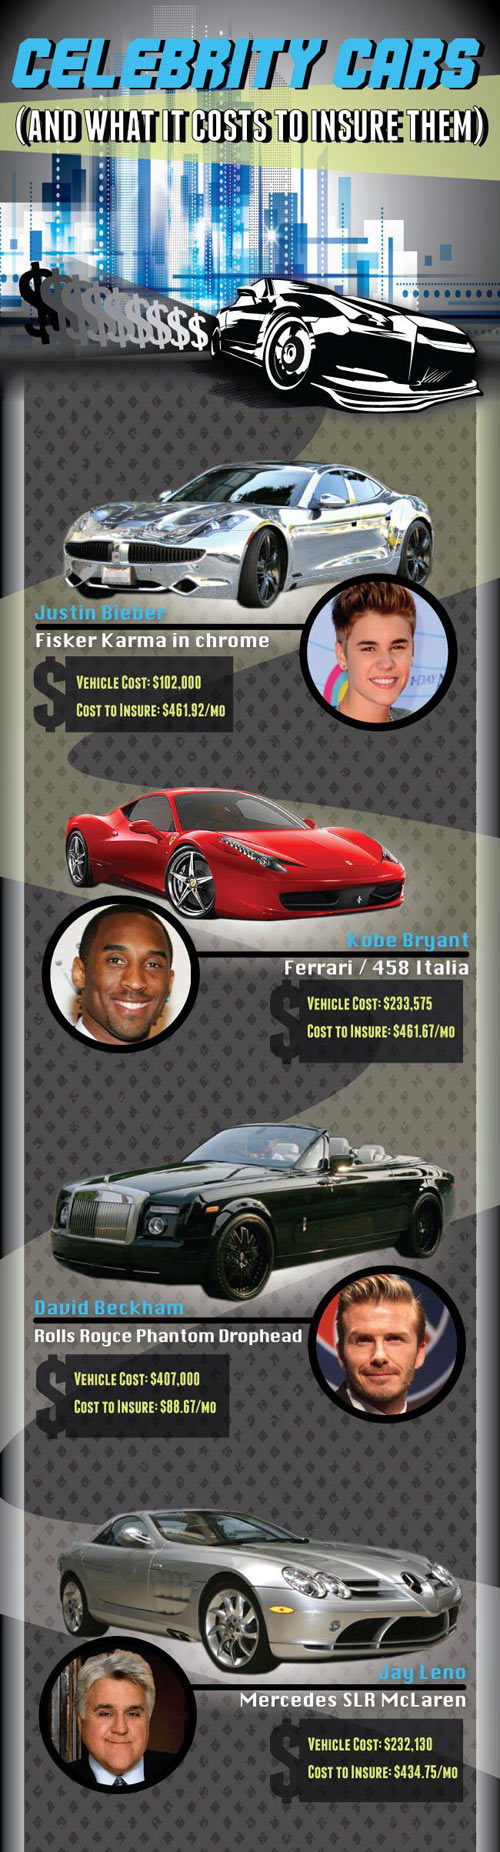 funny-picture-celebrities-cars